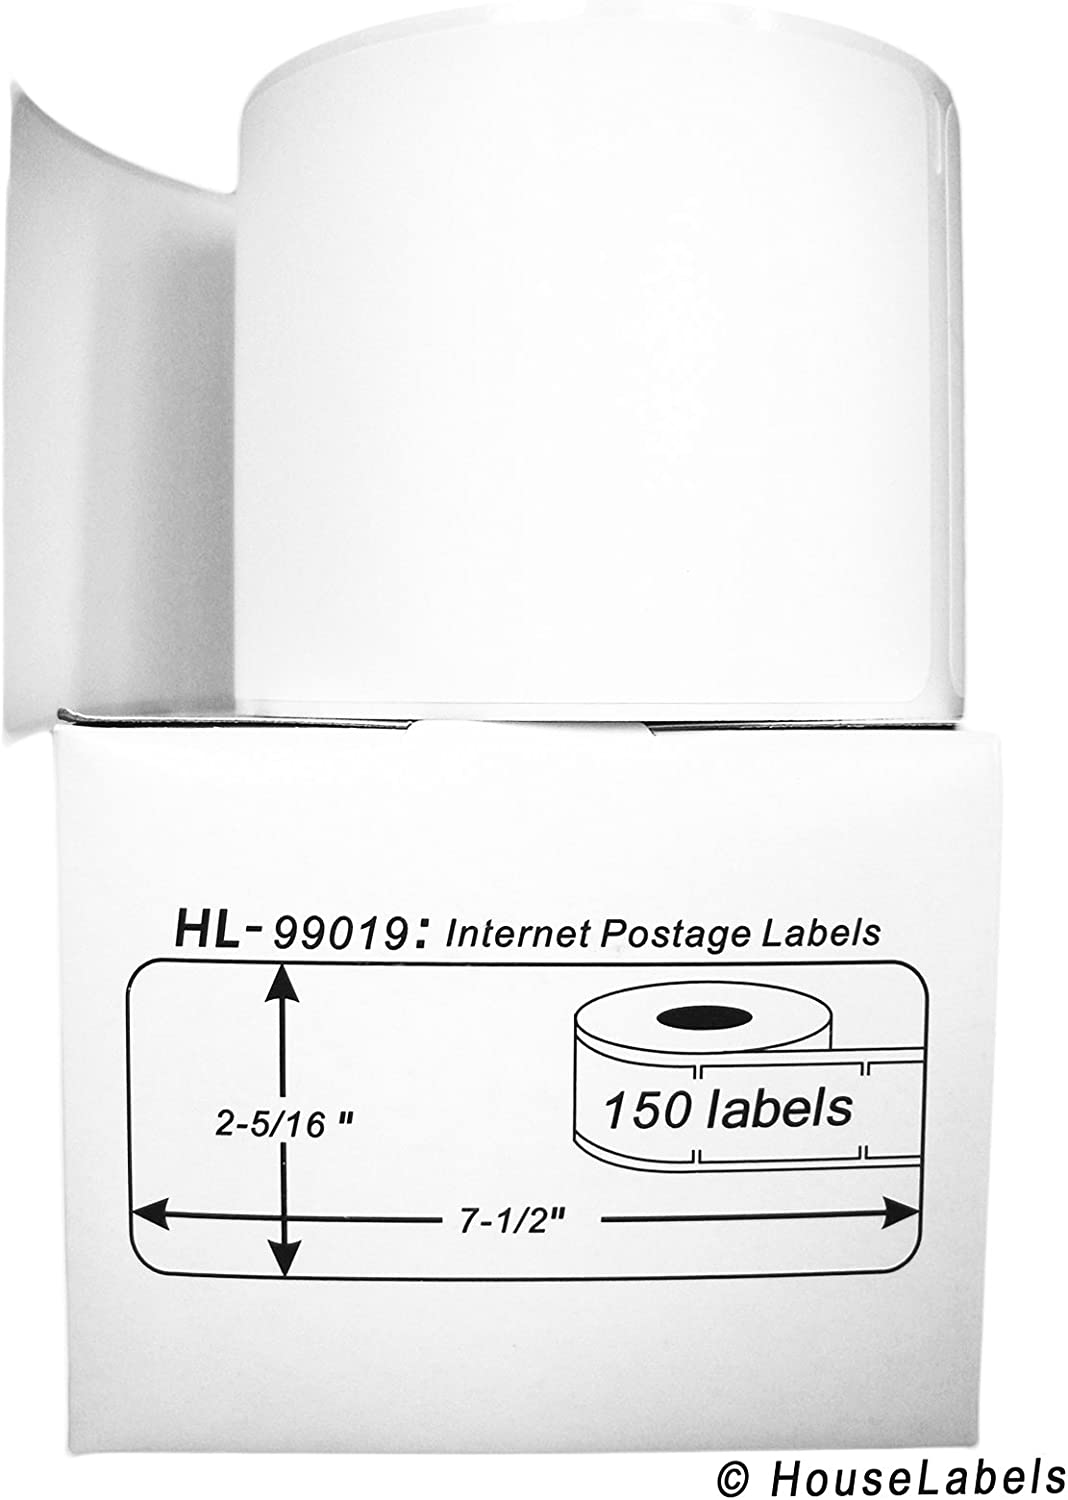 BPA Free! 12 Rolls; 150 Labels per Roll of HouseLabels Compatible with DYMO 99019 1-Part Internet Postage Labels 2-5//16 x 7-1//2